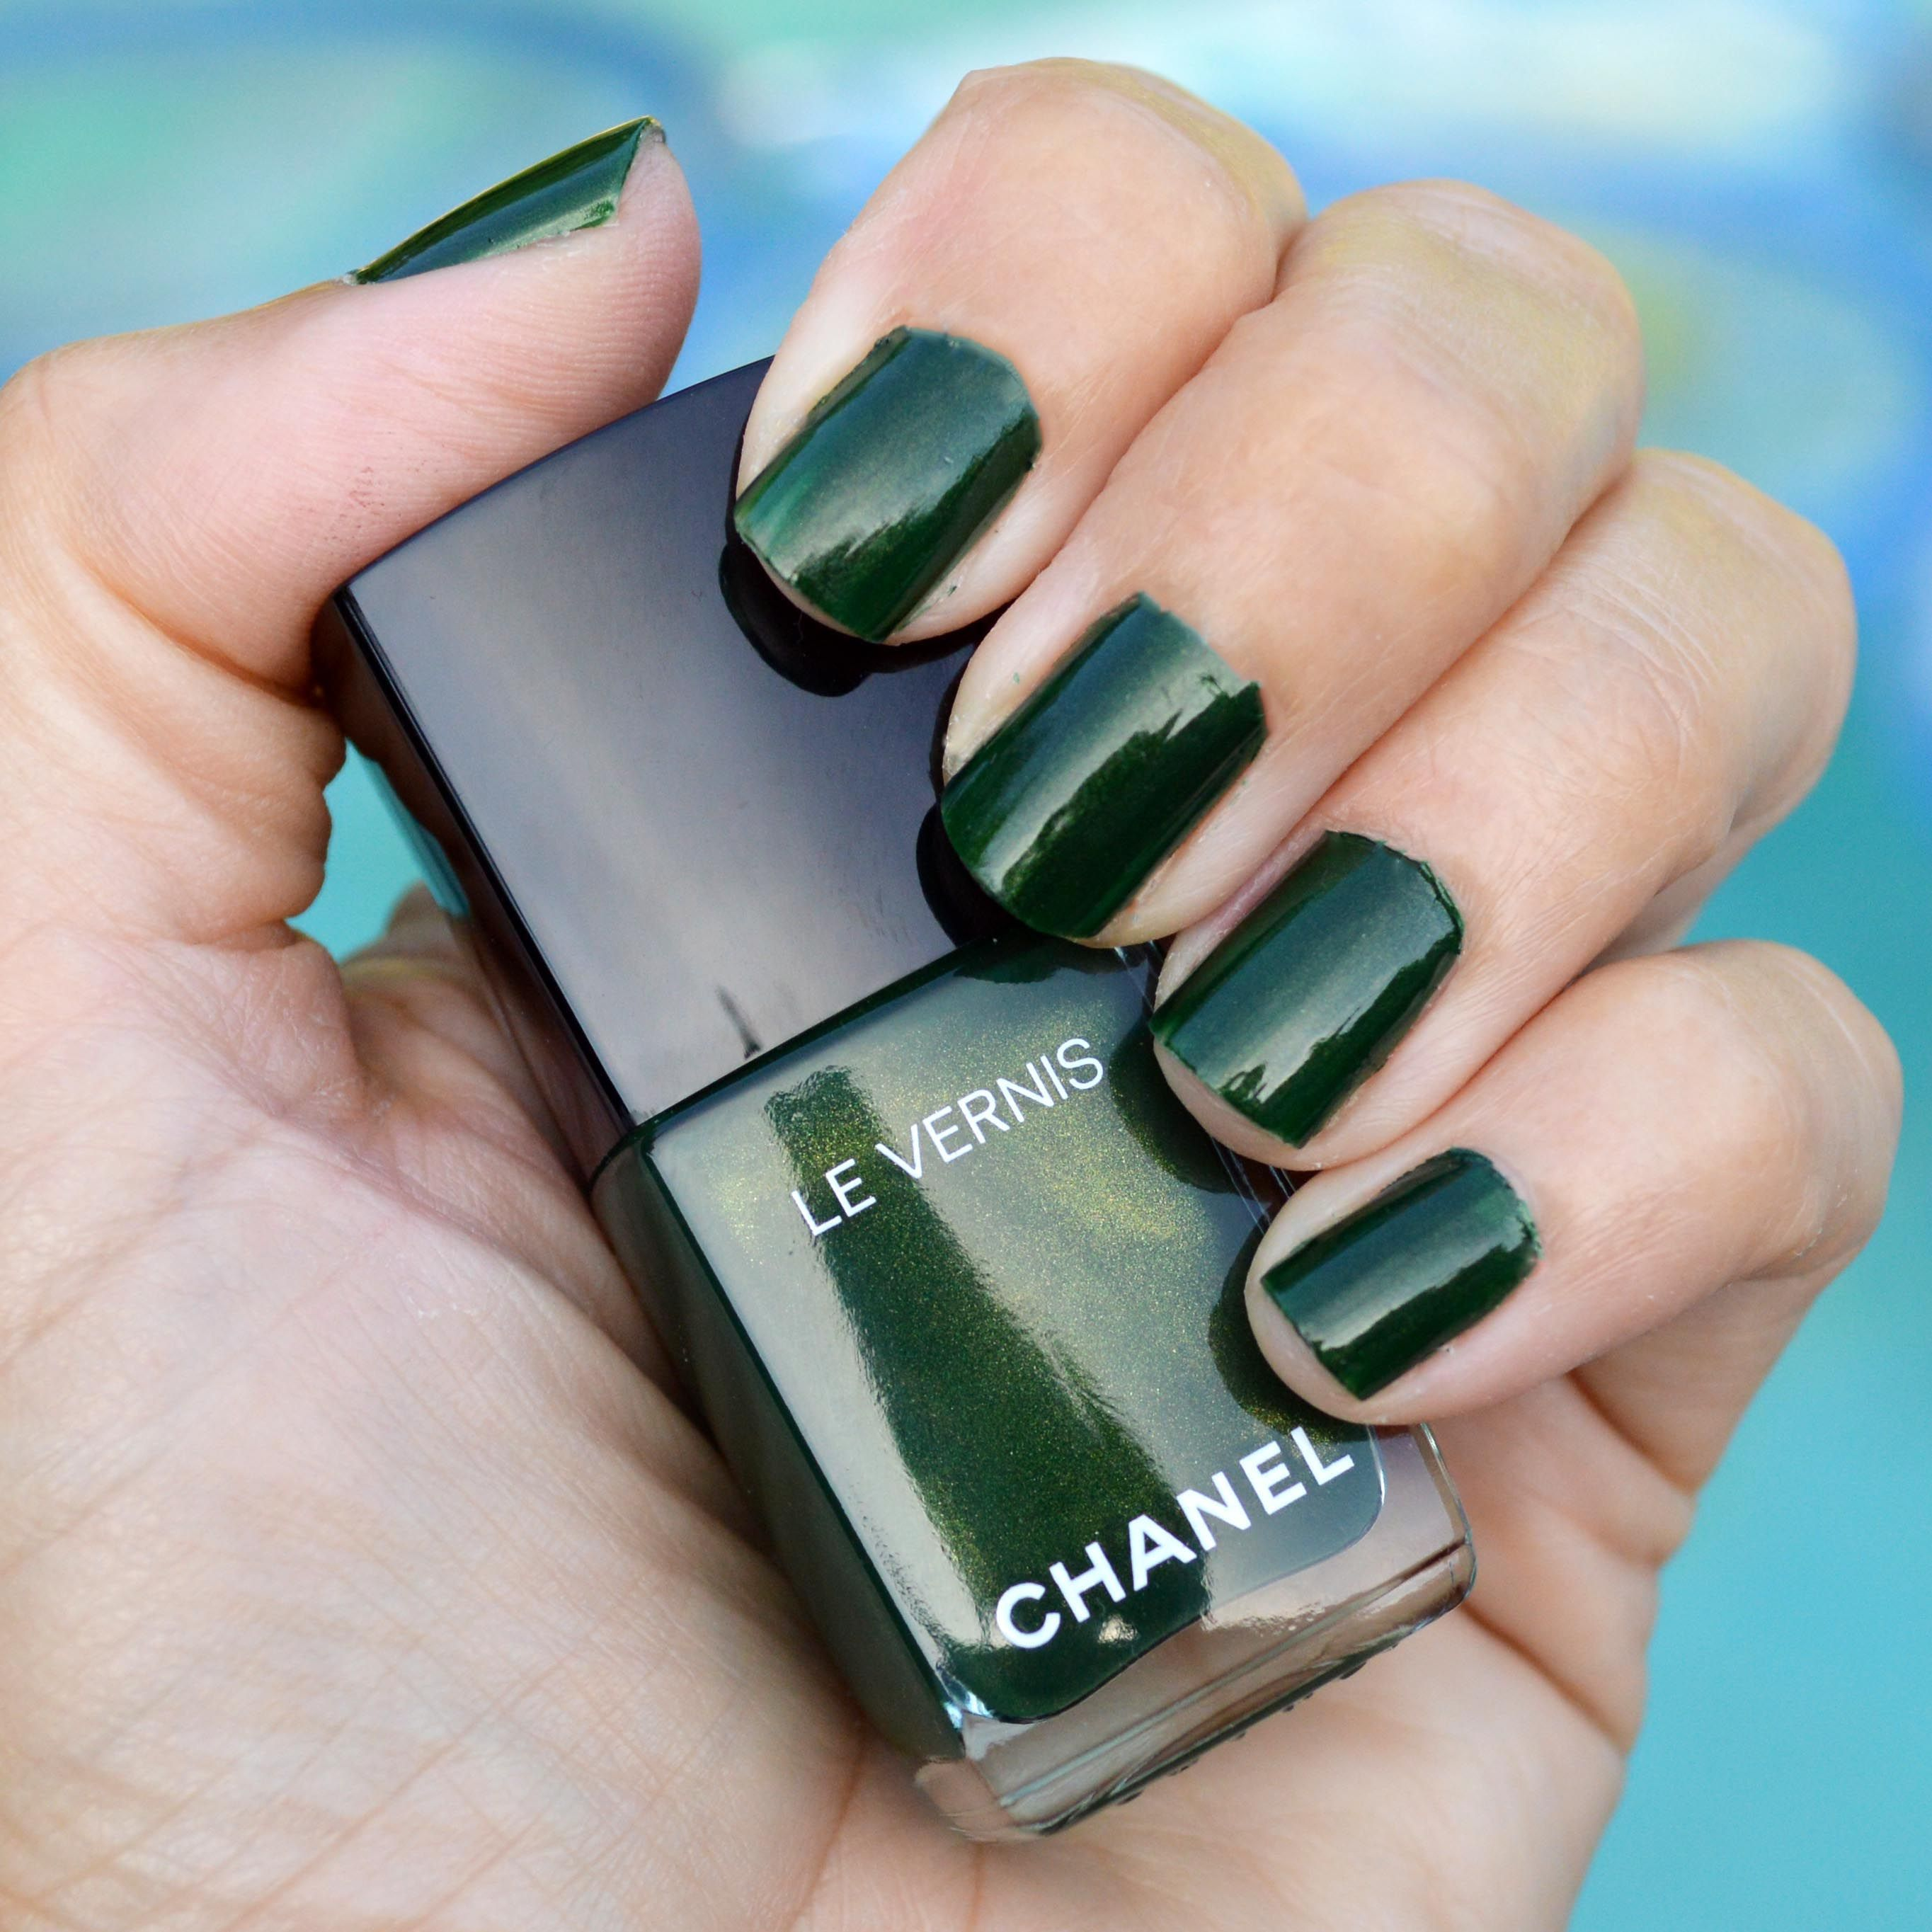 Chanel Emeraude nail polish for summer 2016 review | Nail polish ...